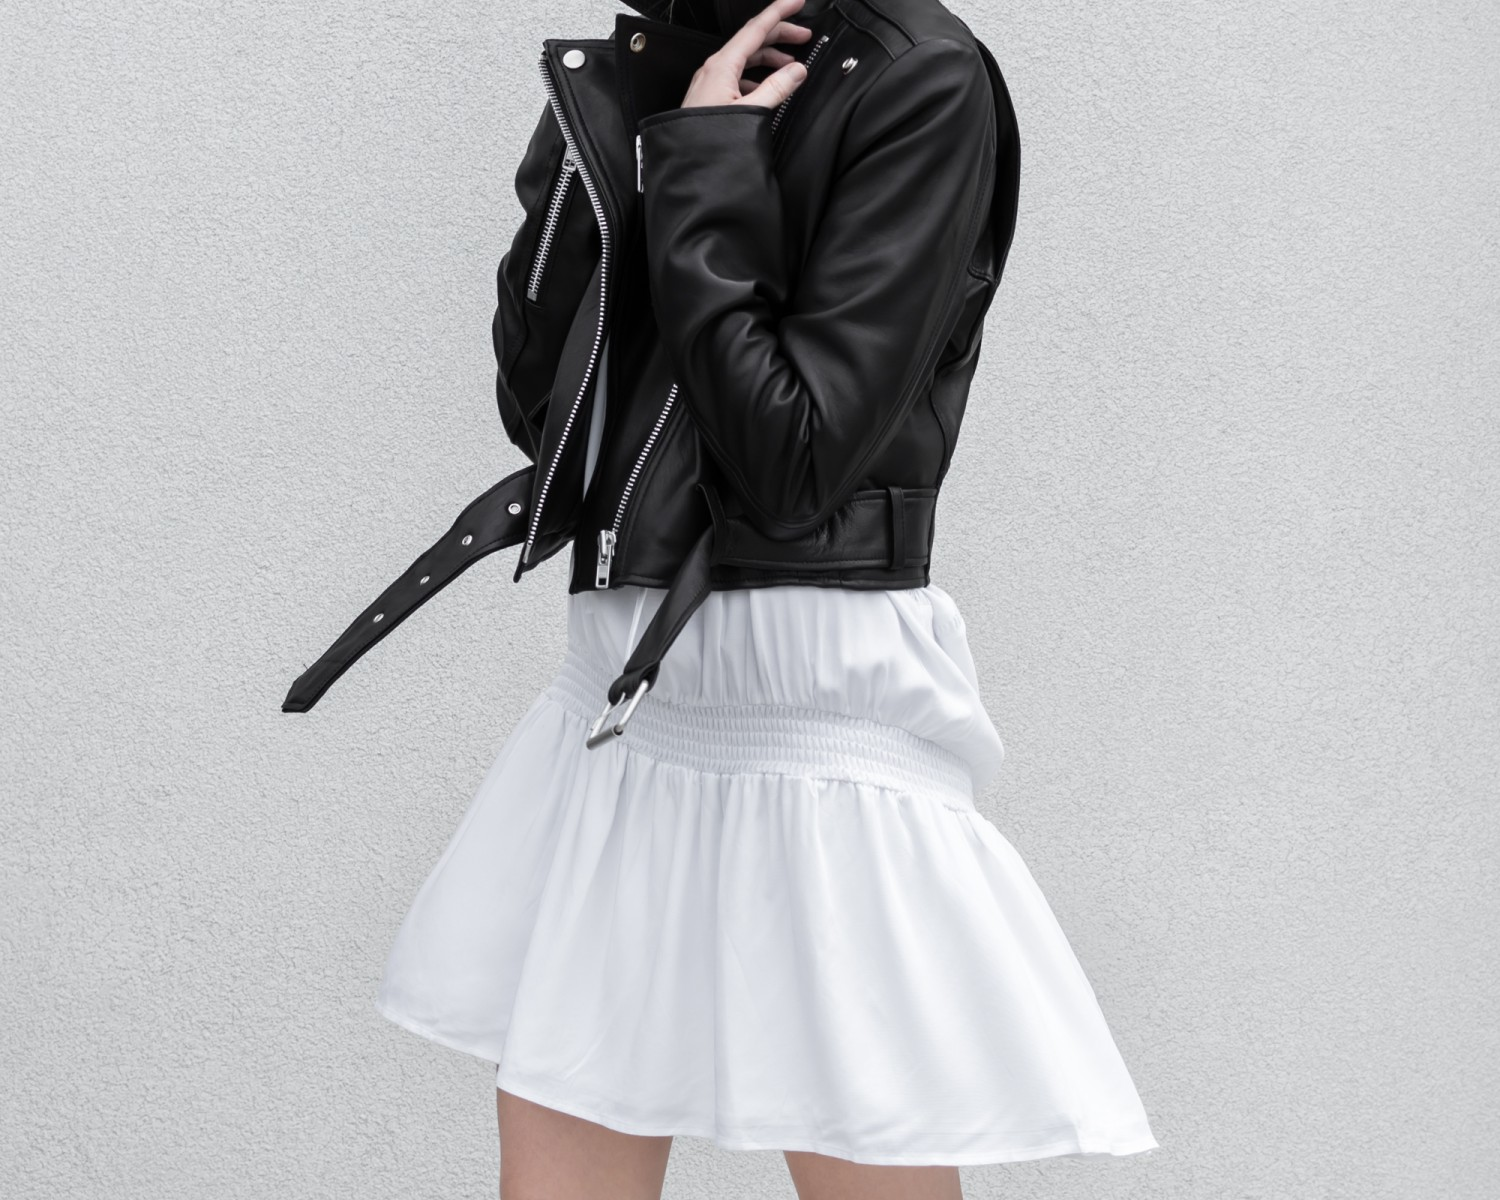 figtny.com | Primary NYC Leather Jacket and Dress